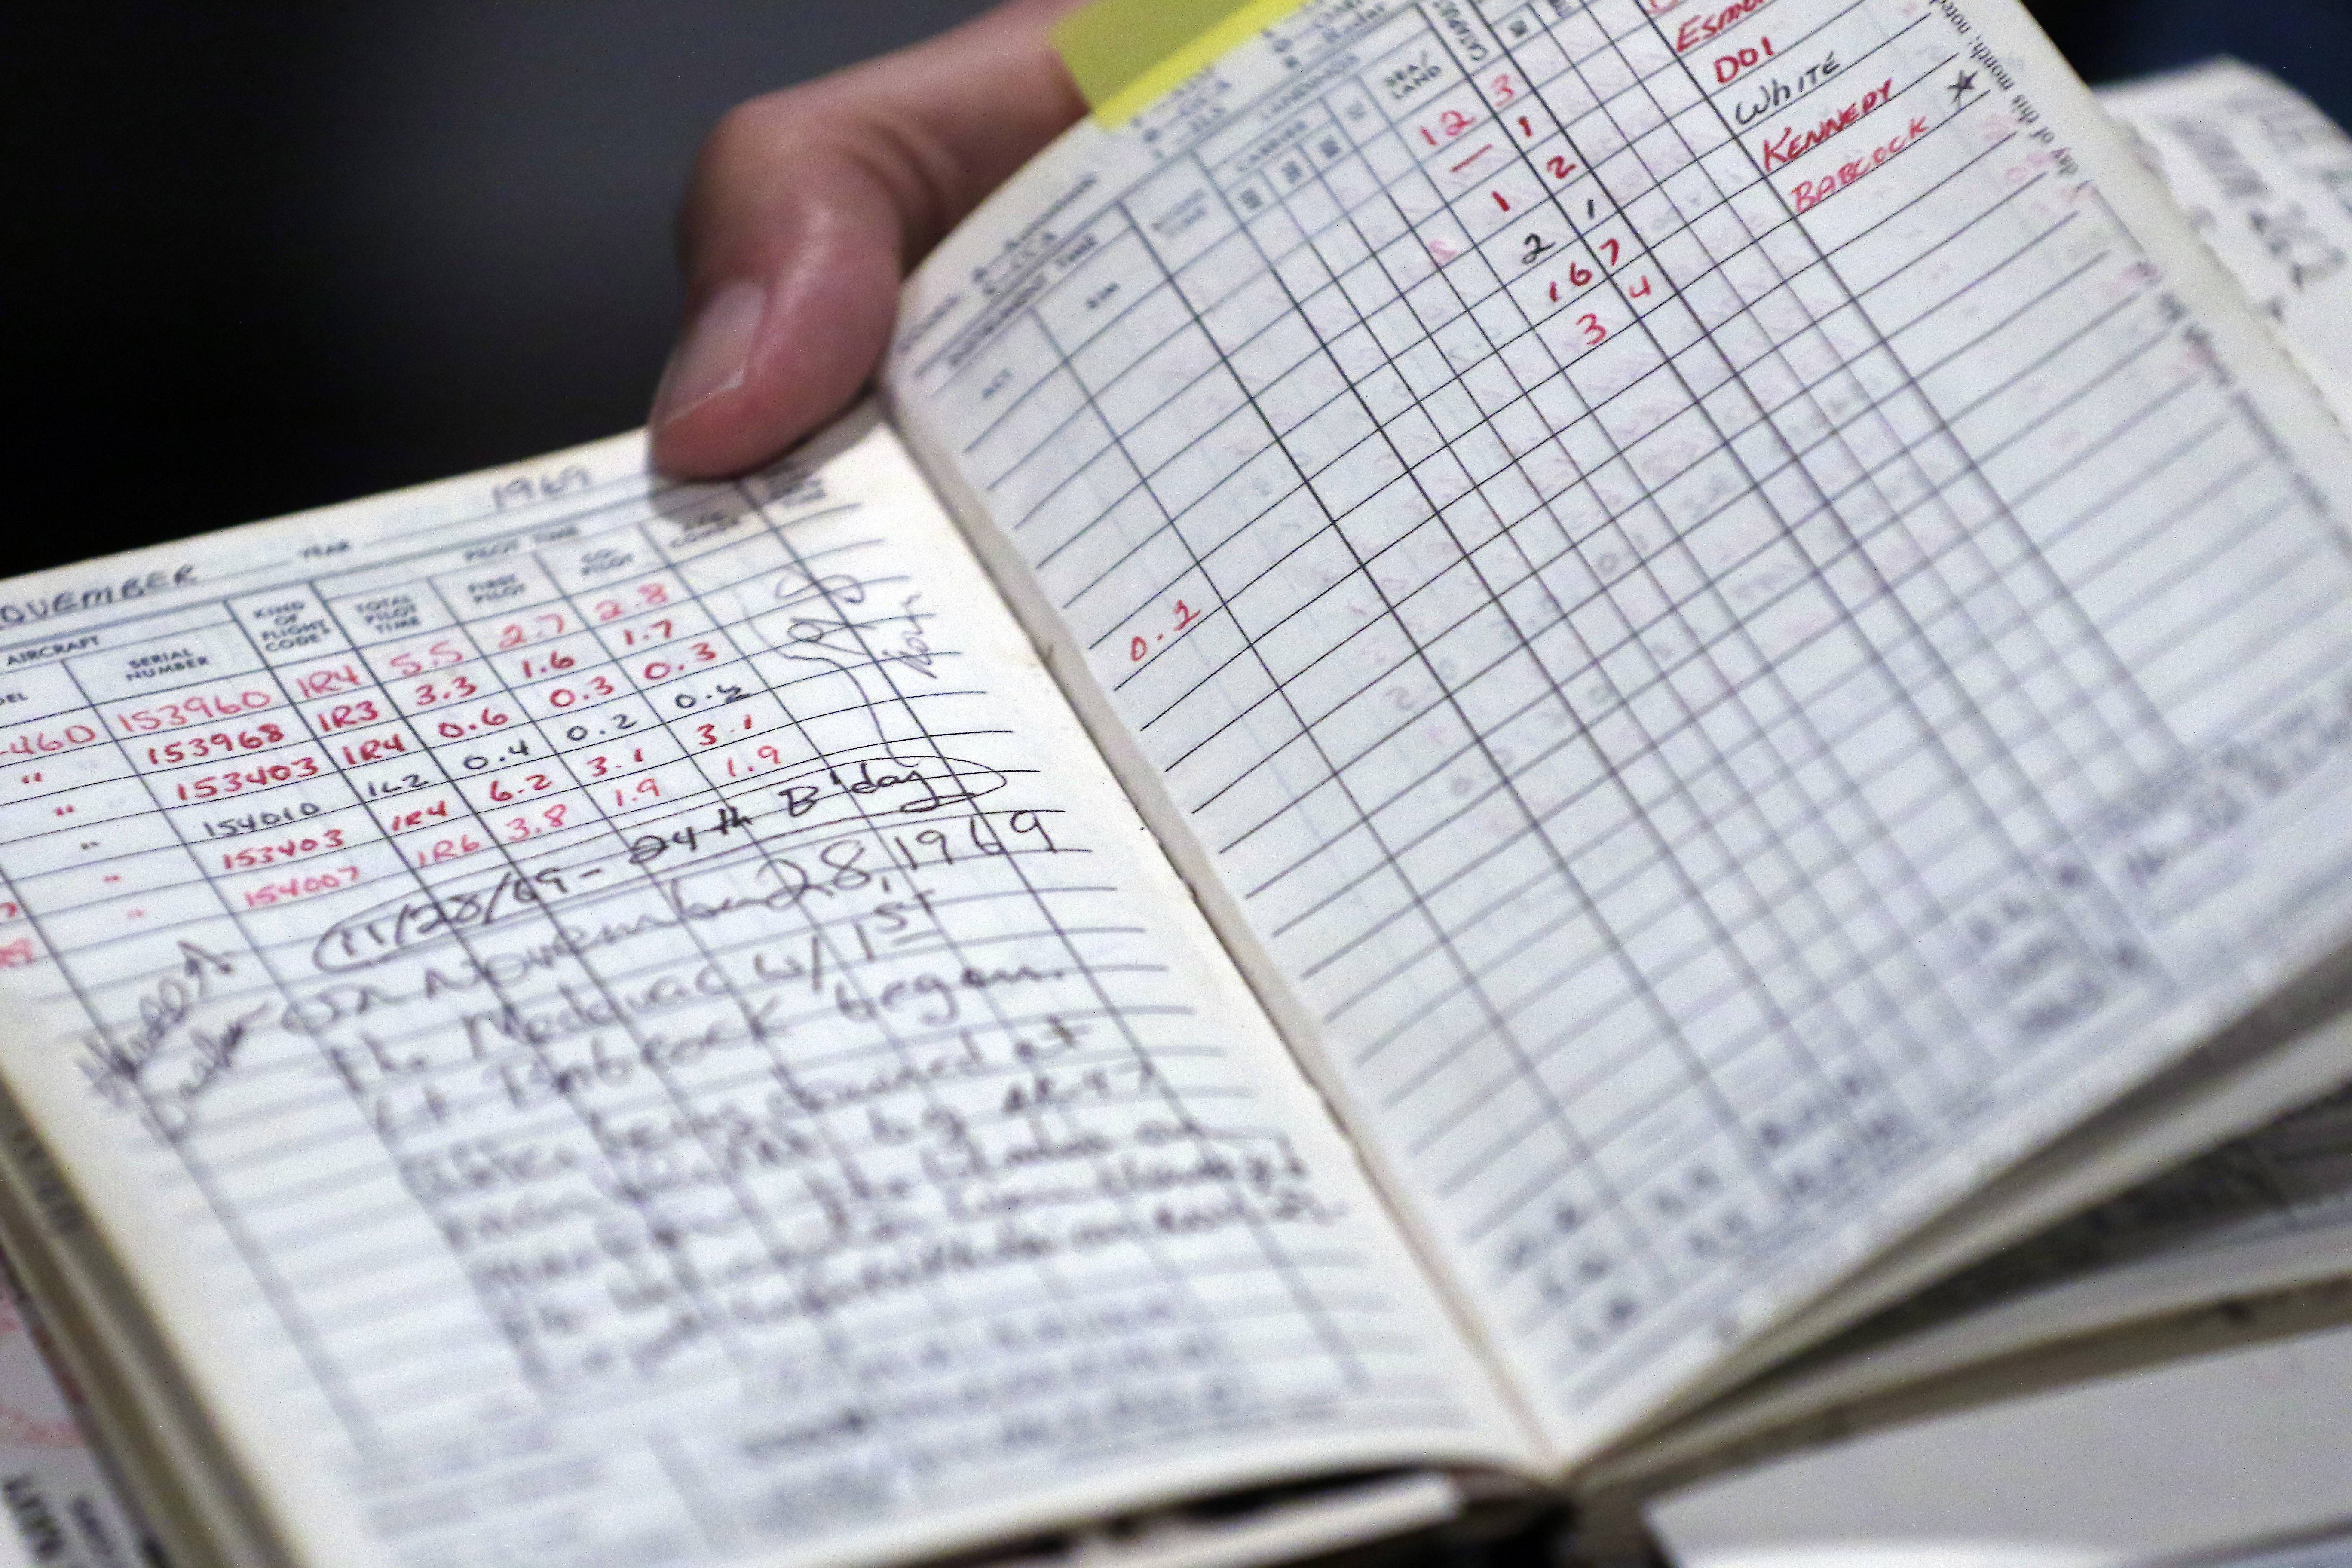 Harold Walker still has the log book showing every helicopter flight he piloted during the Vietnam War. Any writing in red indicates a time when the helicopter flew into a combat zone.